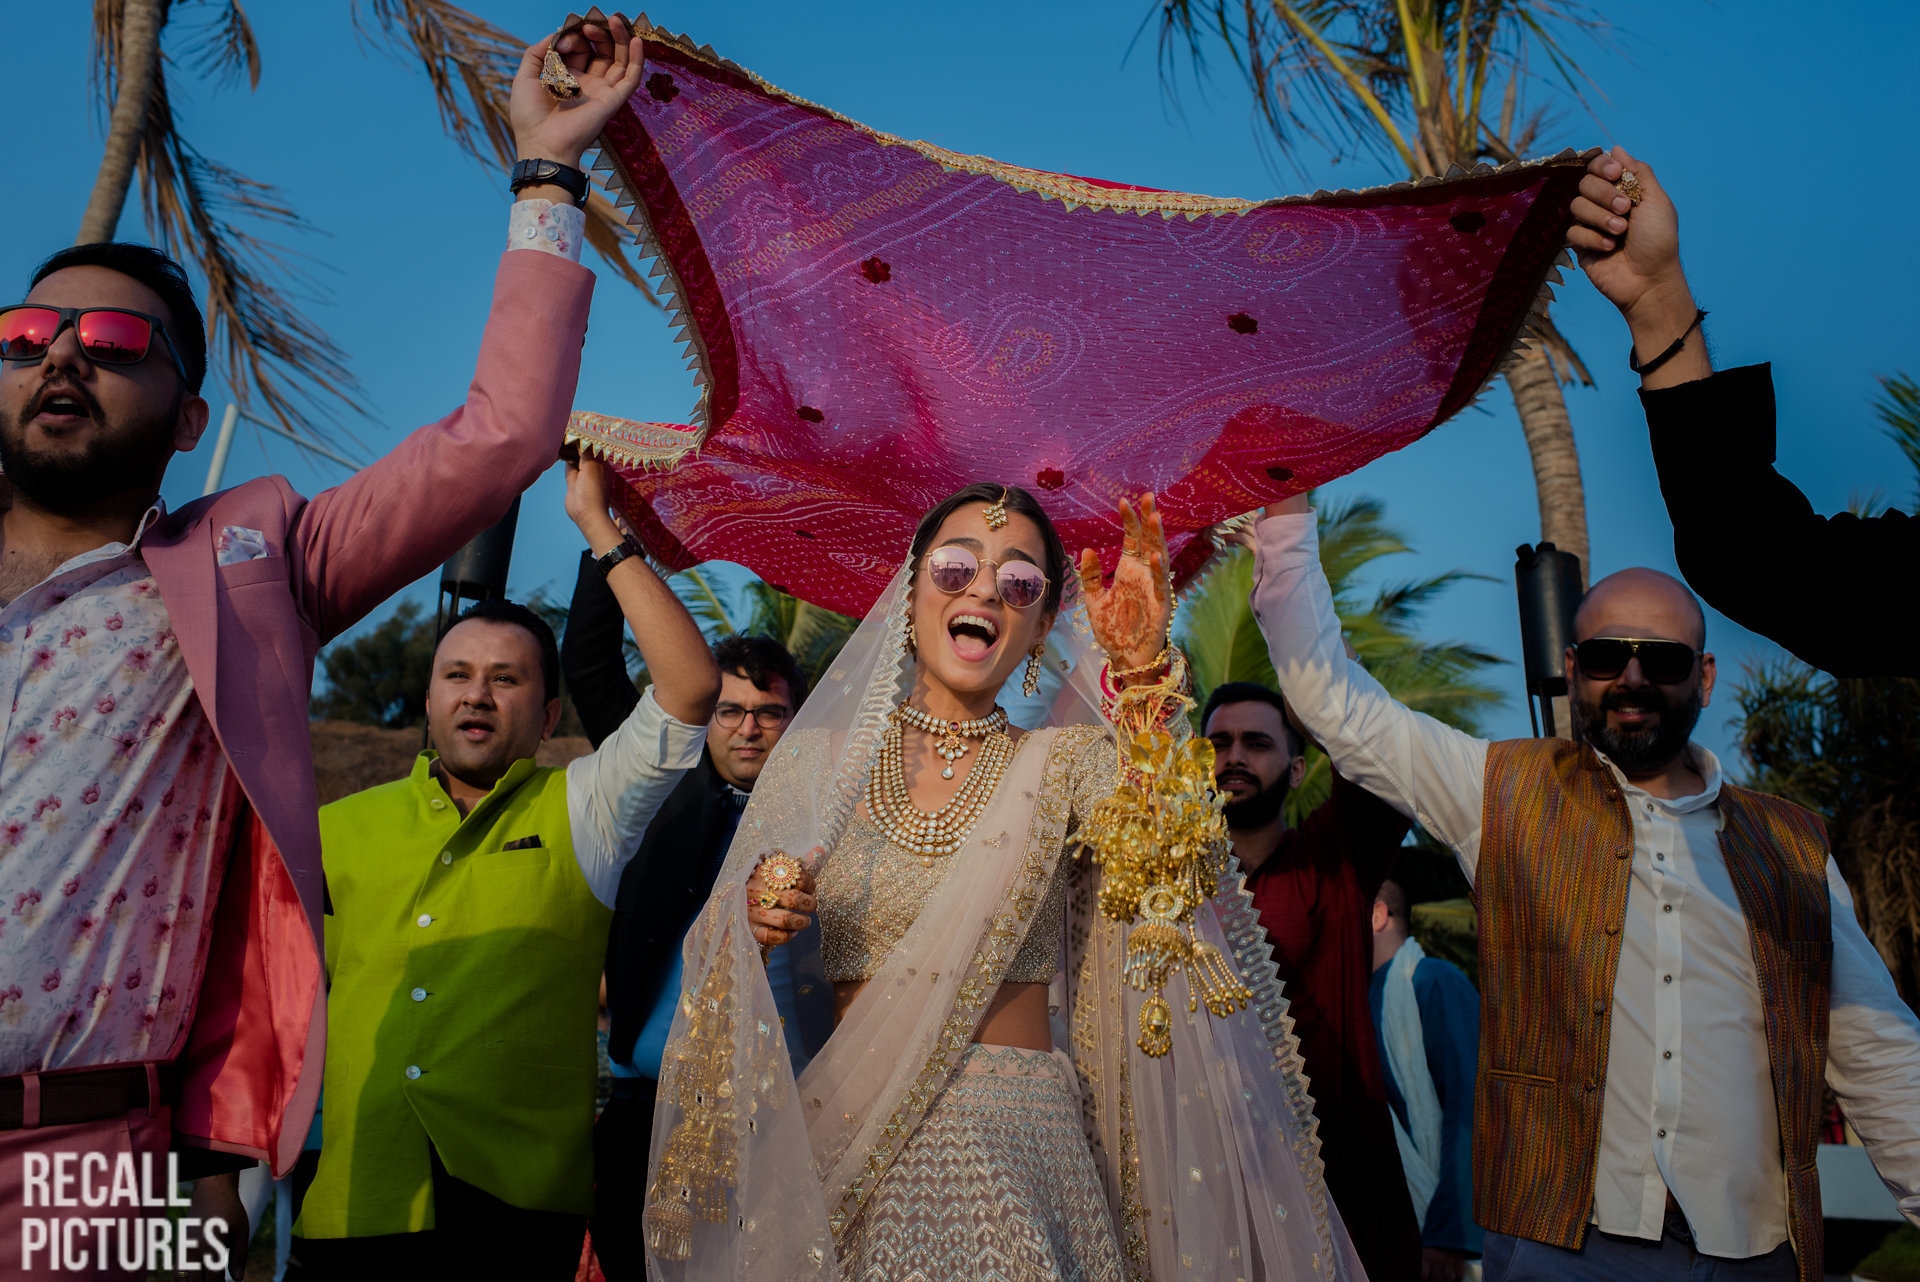 Phoolon ki chadar for bride- Using dupatta as phoolon ki chadar